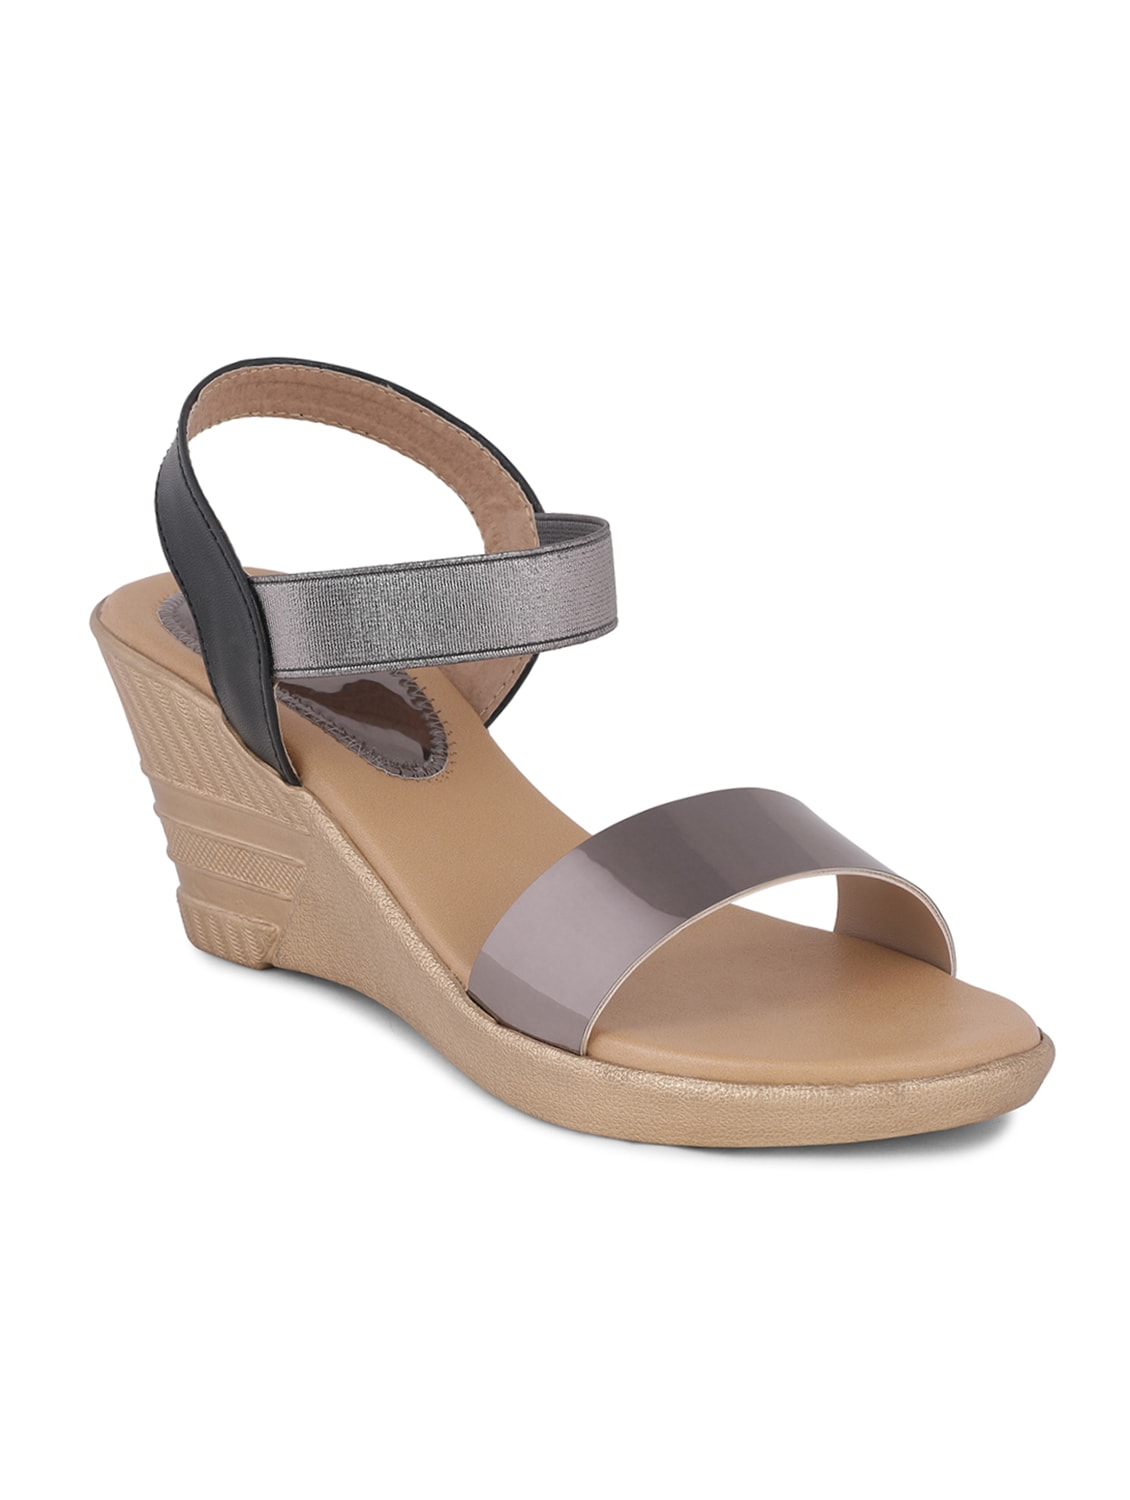 a887a9c55b96 Buy Grey Back Strap Wedges for Women from Sindhi Footwear for ₹521 at 35%  off